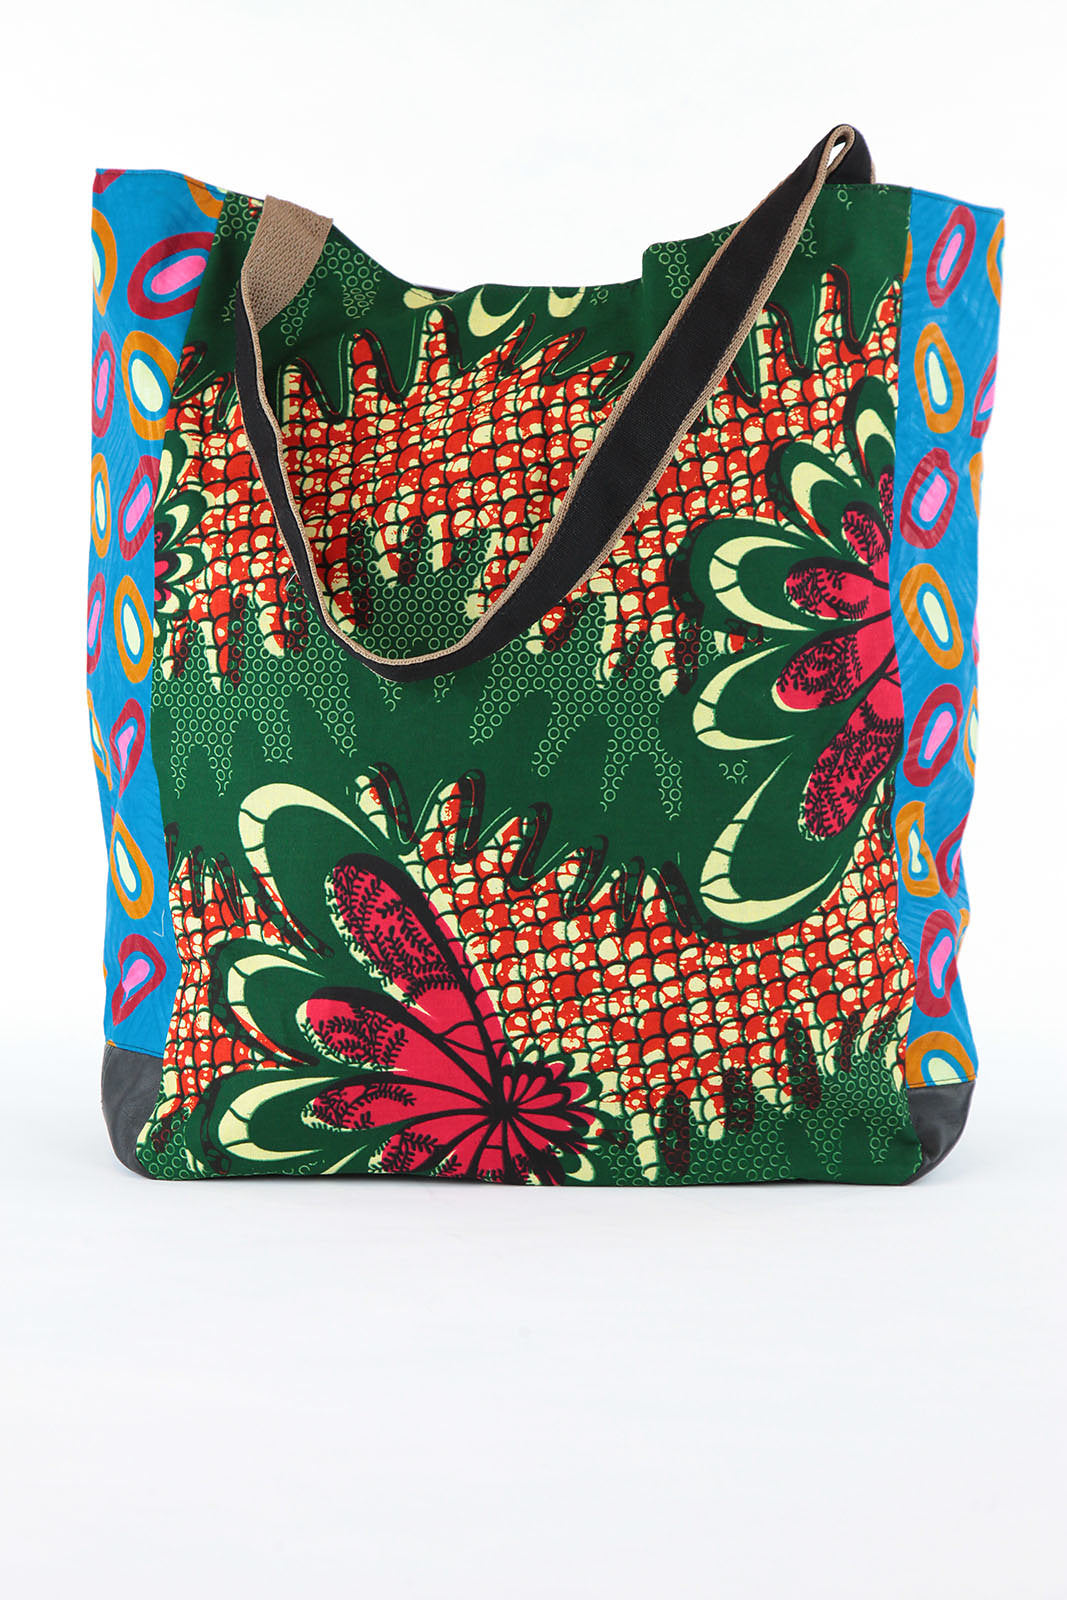 African Print Shopper Bag - Green/Wave/Blue Print - Africas Closet